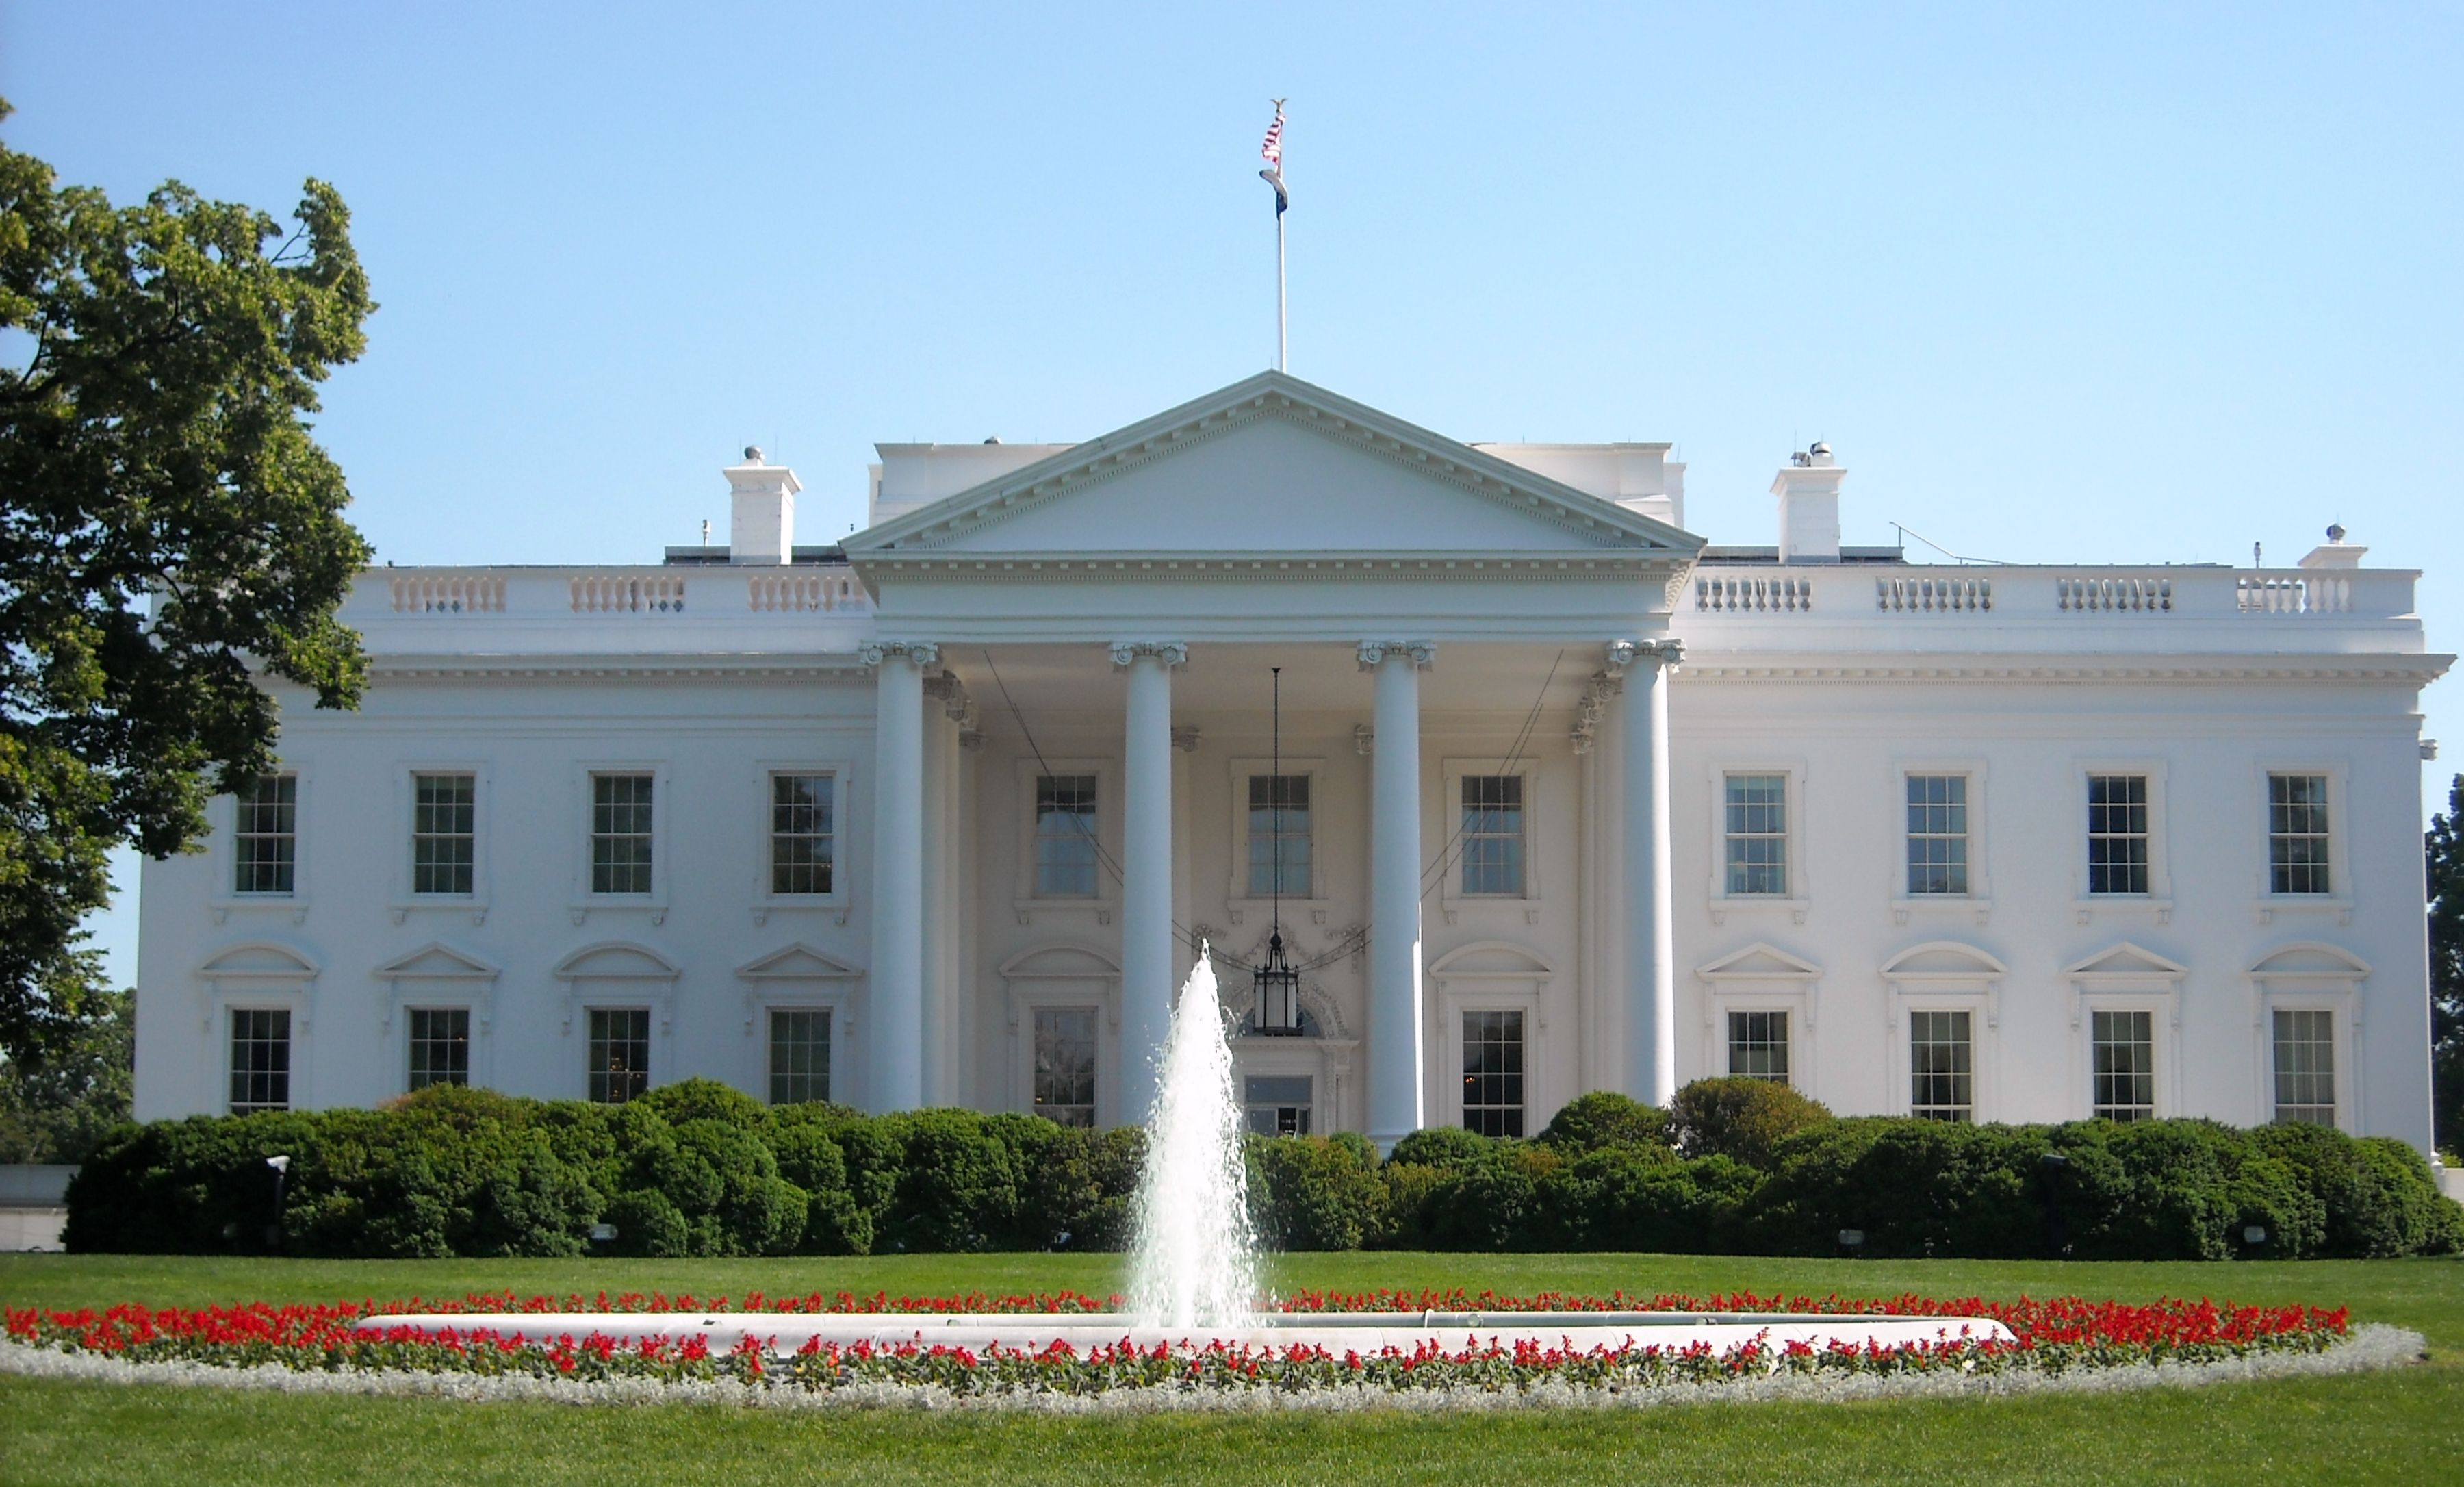 The White House - The Pre